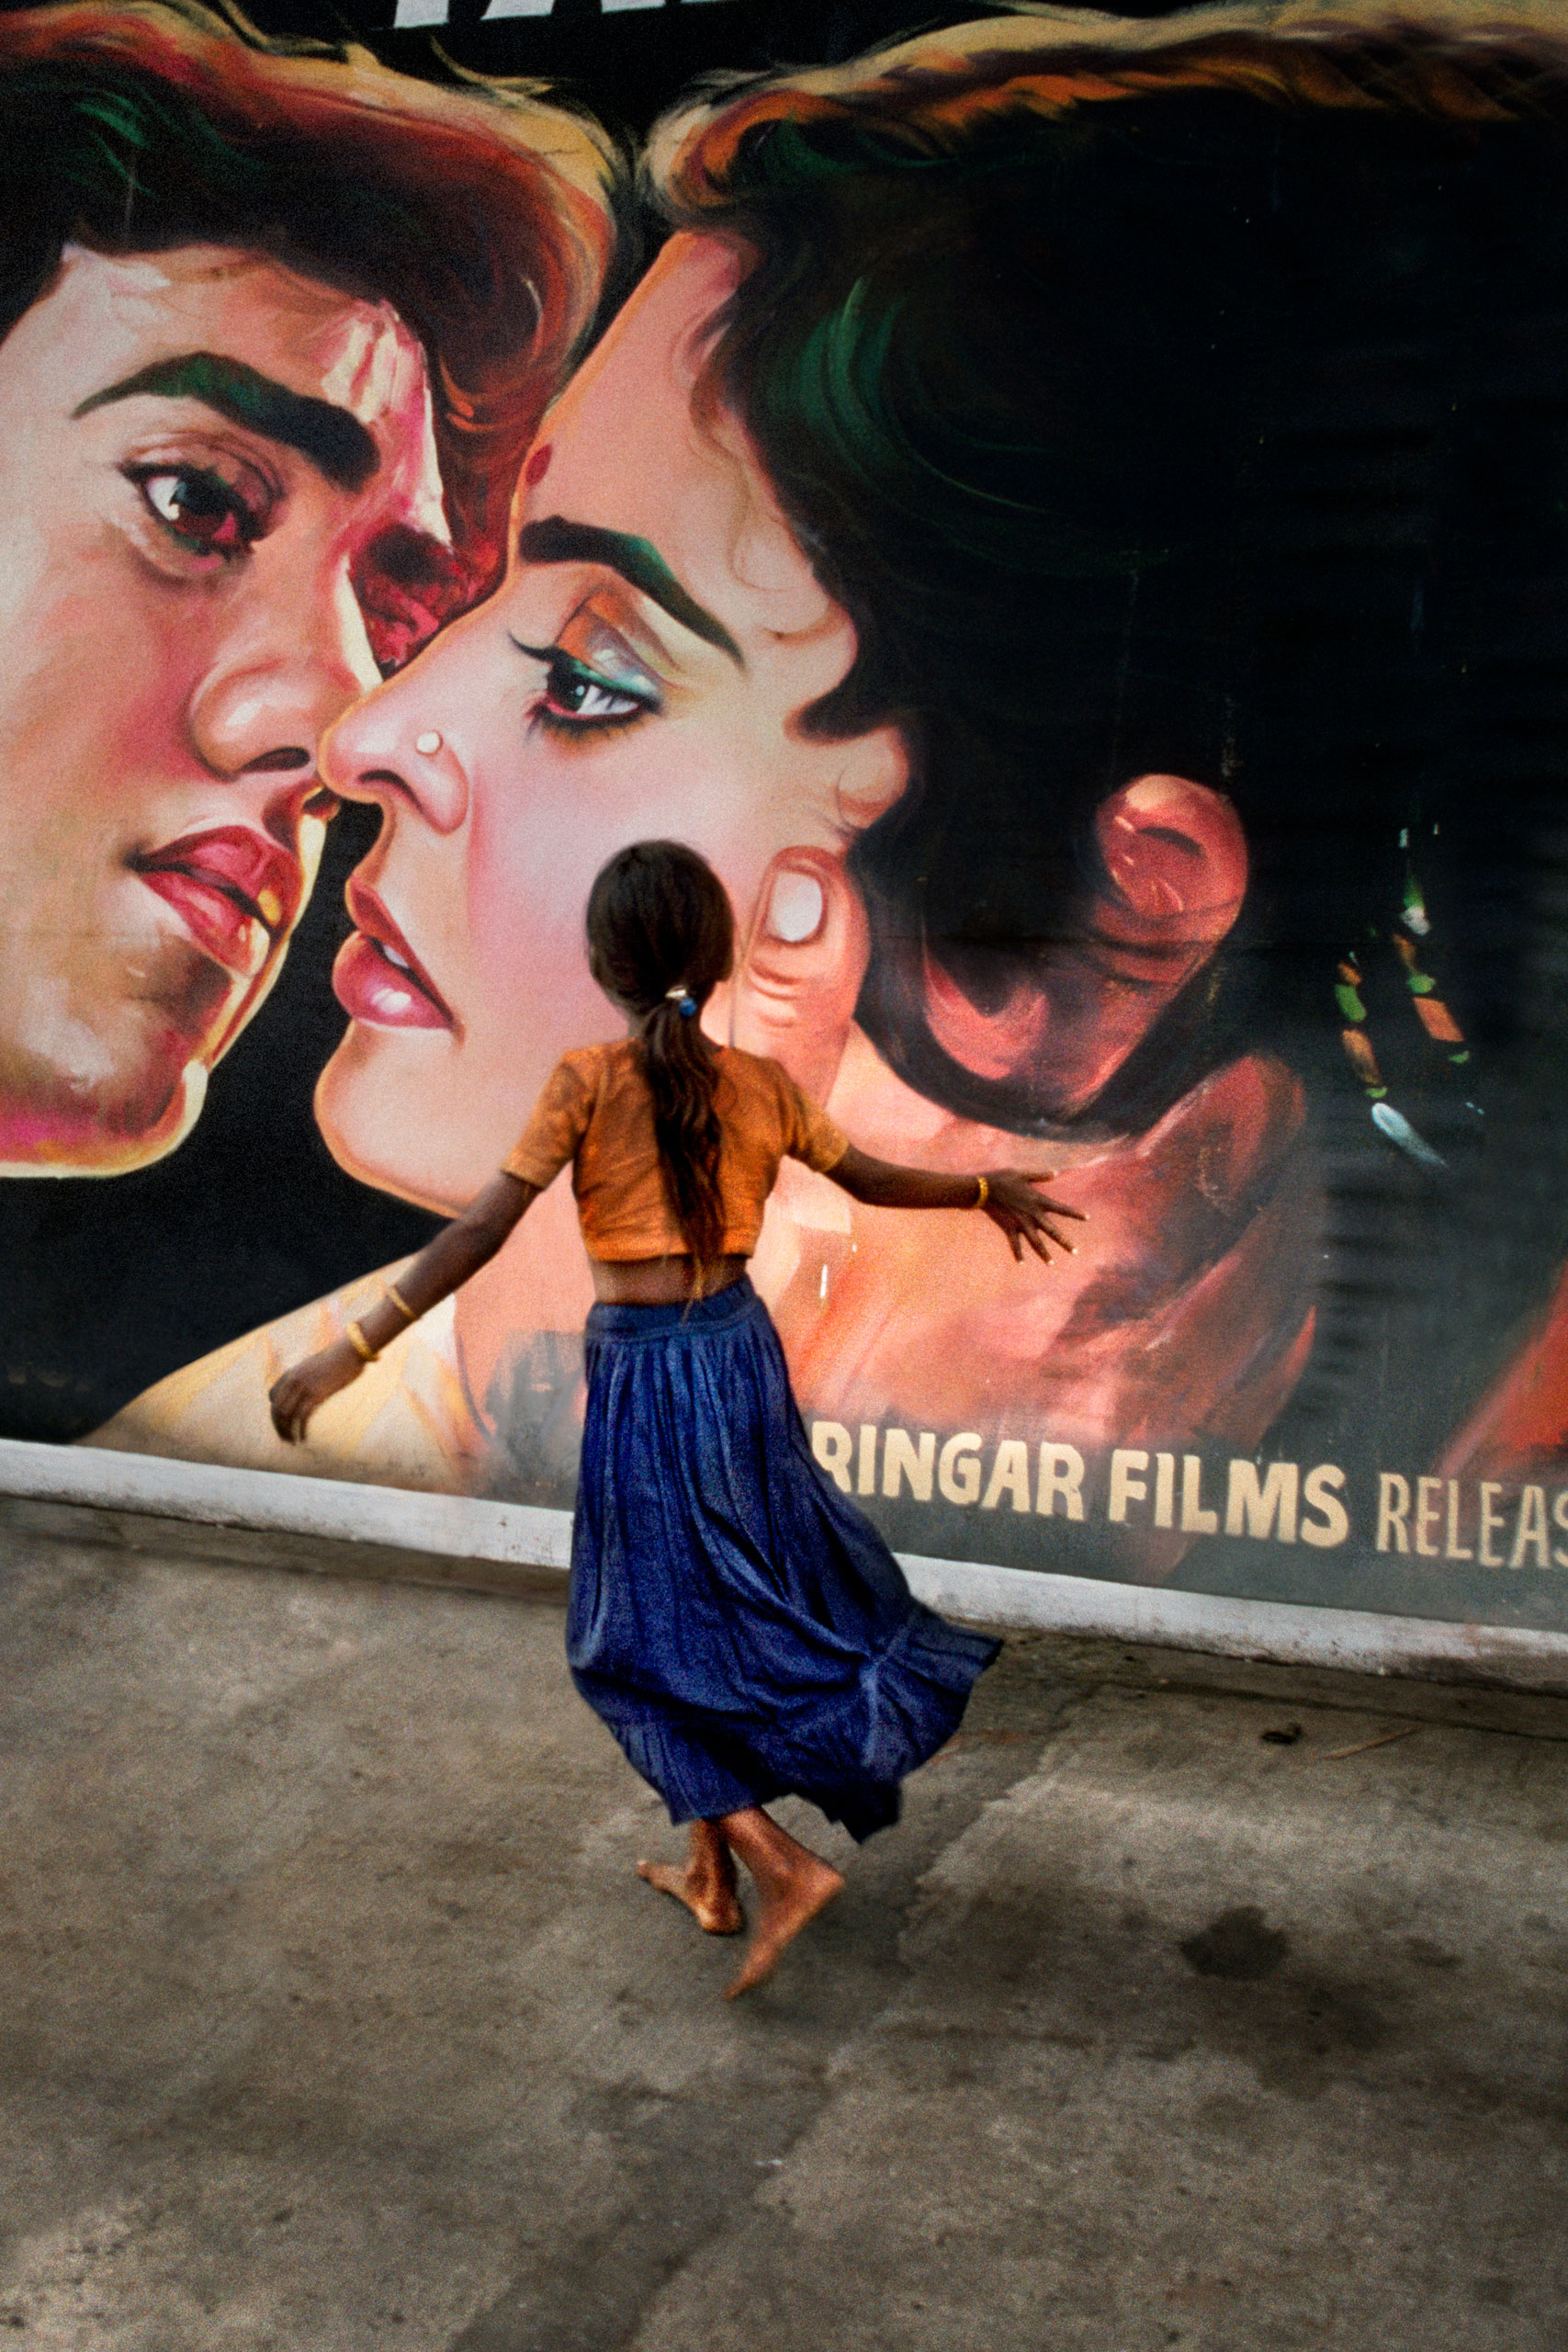 A young girl walking past a movie poster Mumbai, 1993